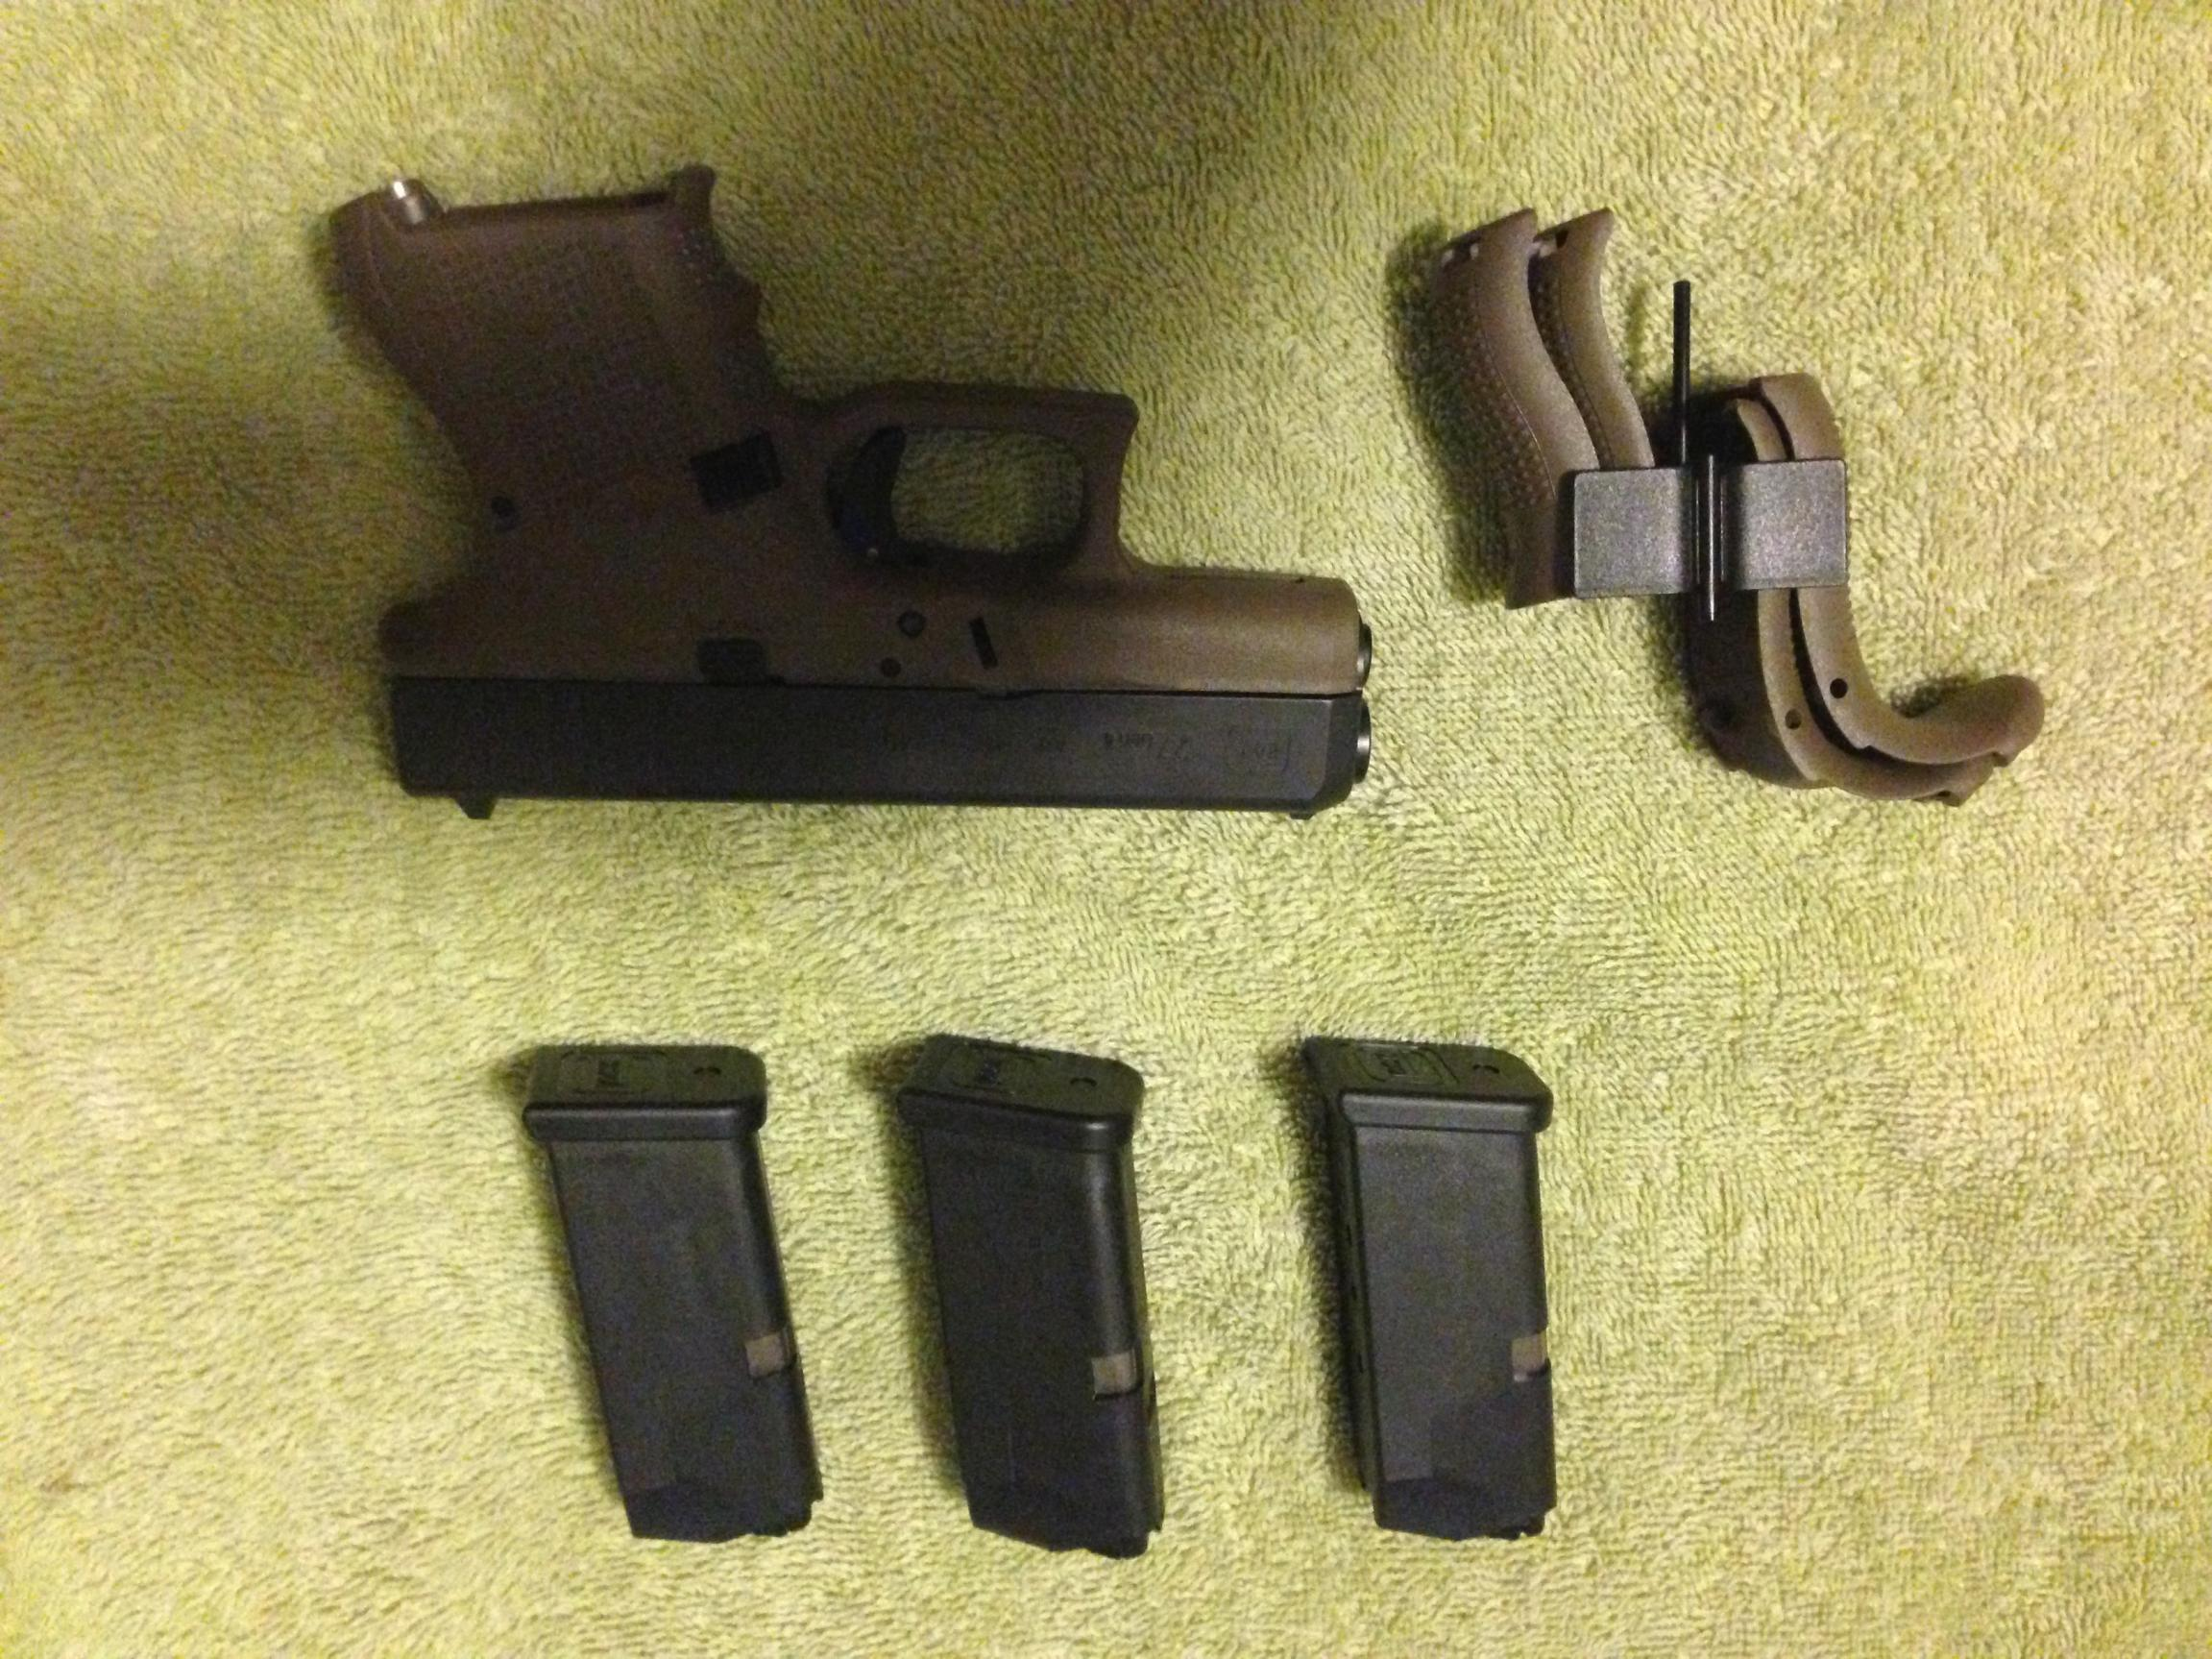 new conceal carry rig-img_1788-1-.jpg